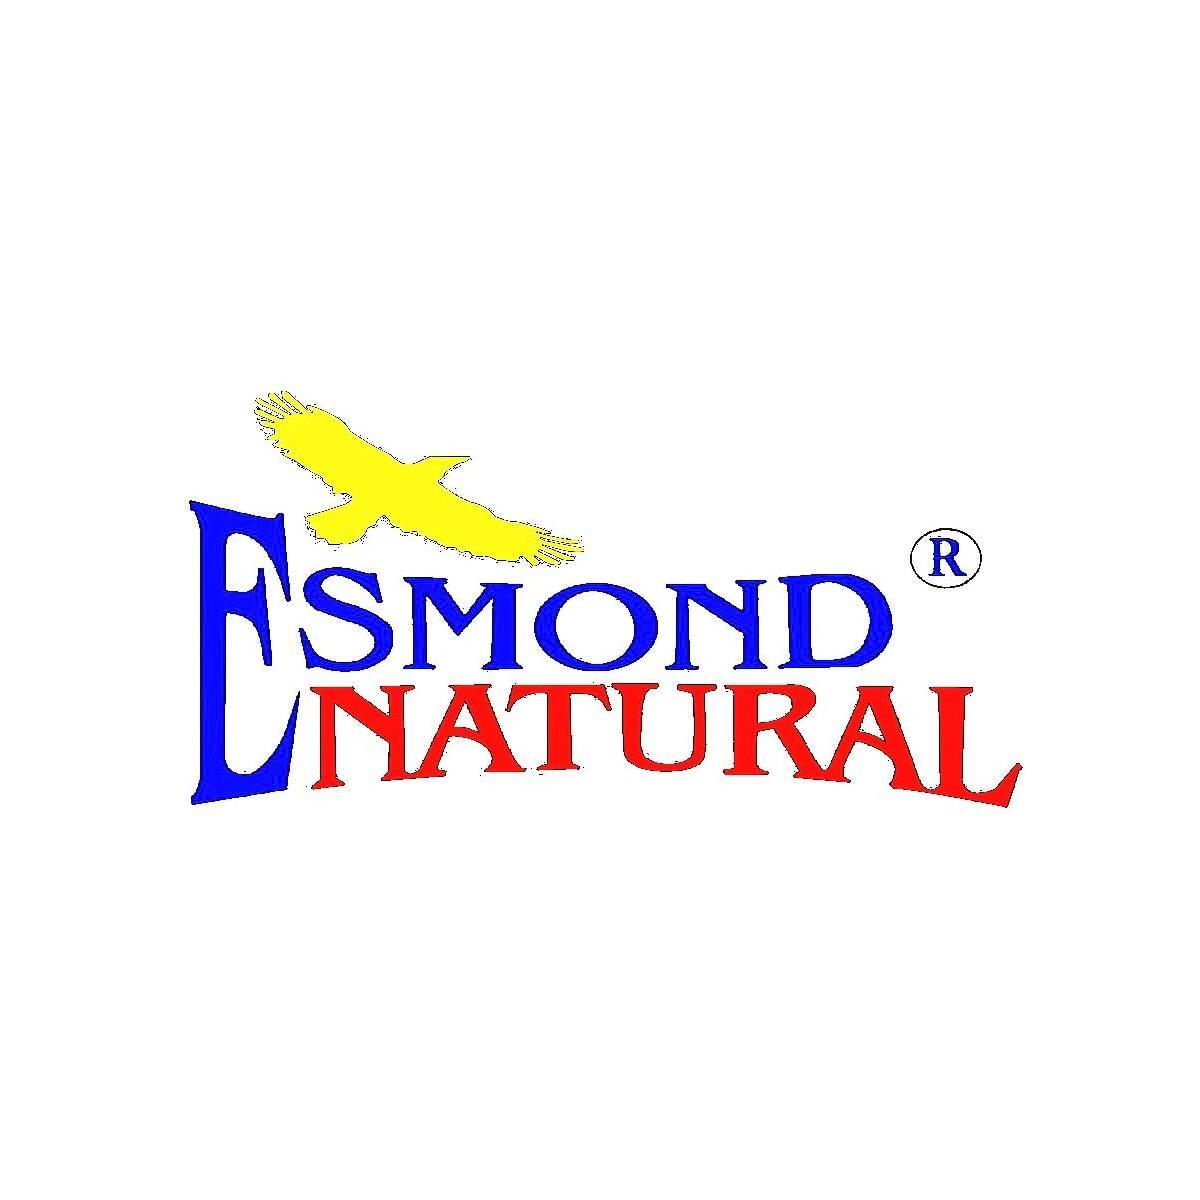 (3 Count, 10% Off) Esmond Natural: ENC Lutein Esters Complex (Pressed Candy), GMP, Natural Product Assn Certified, Made in USA-1100mg, 180 Tablets